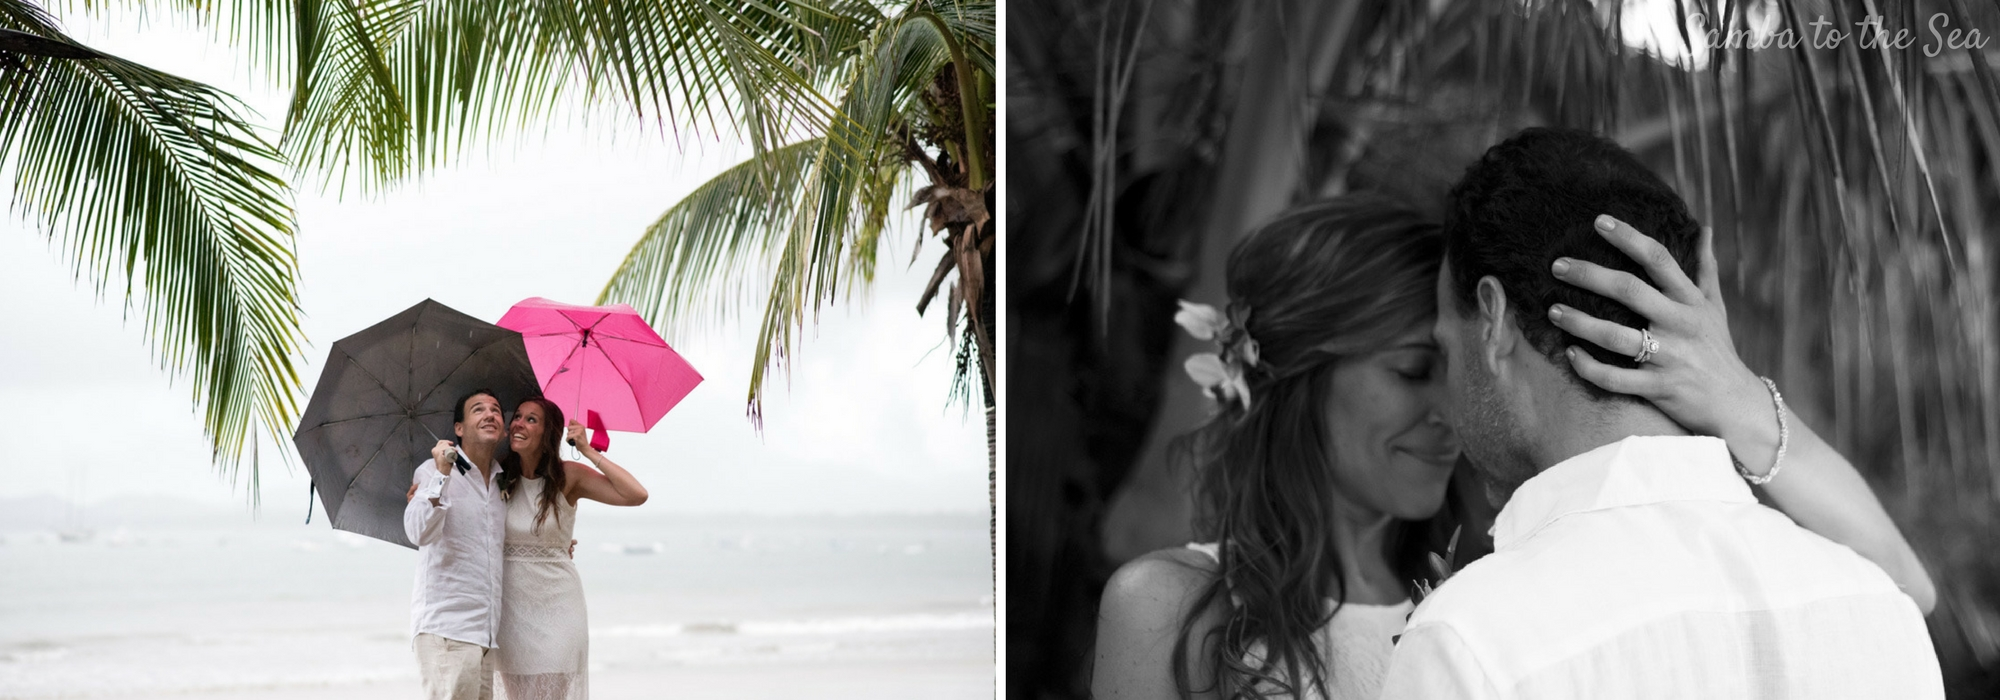 Elopement photos in Tamarindo, Costa Rica. Photographed by Kristen M. Brown, Samba to the Sea Photography.